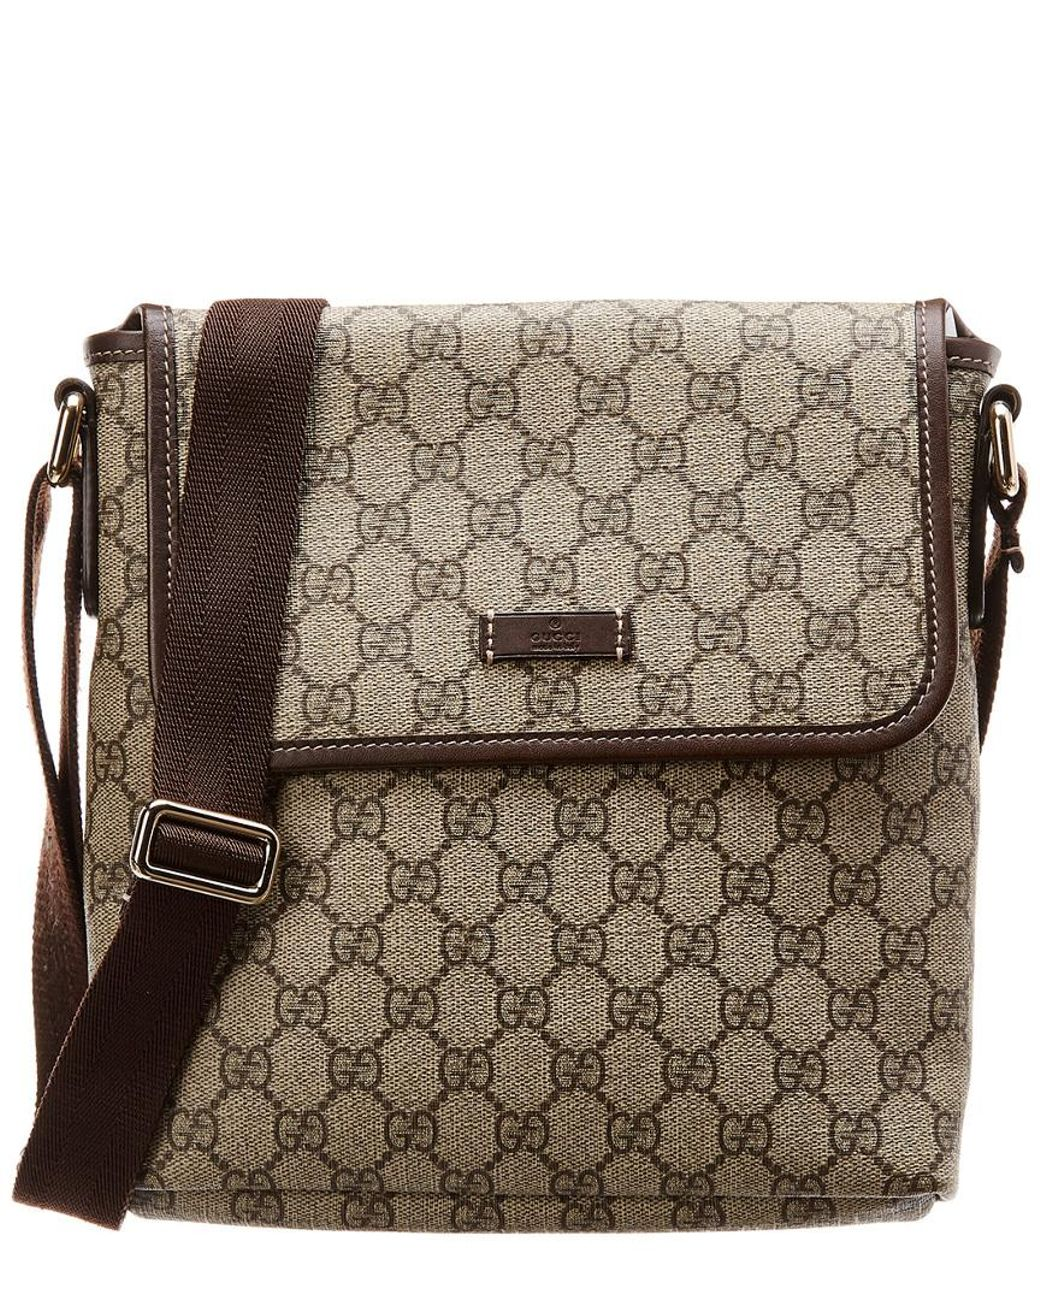 5f823332b3dd Gucci Brown GG Supreme Canvas & Leather Messenger Bag in Brown - Lyst